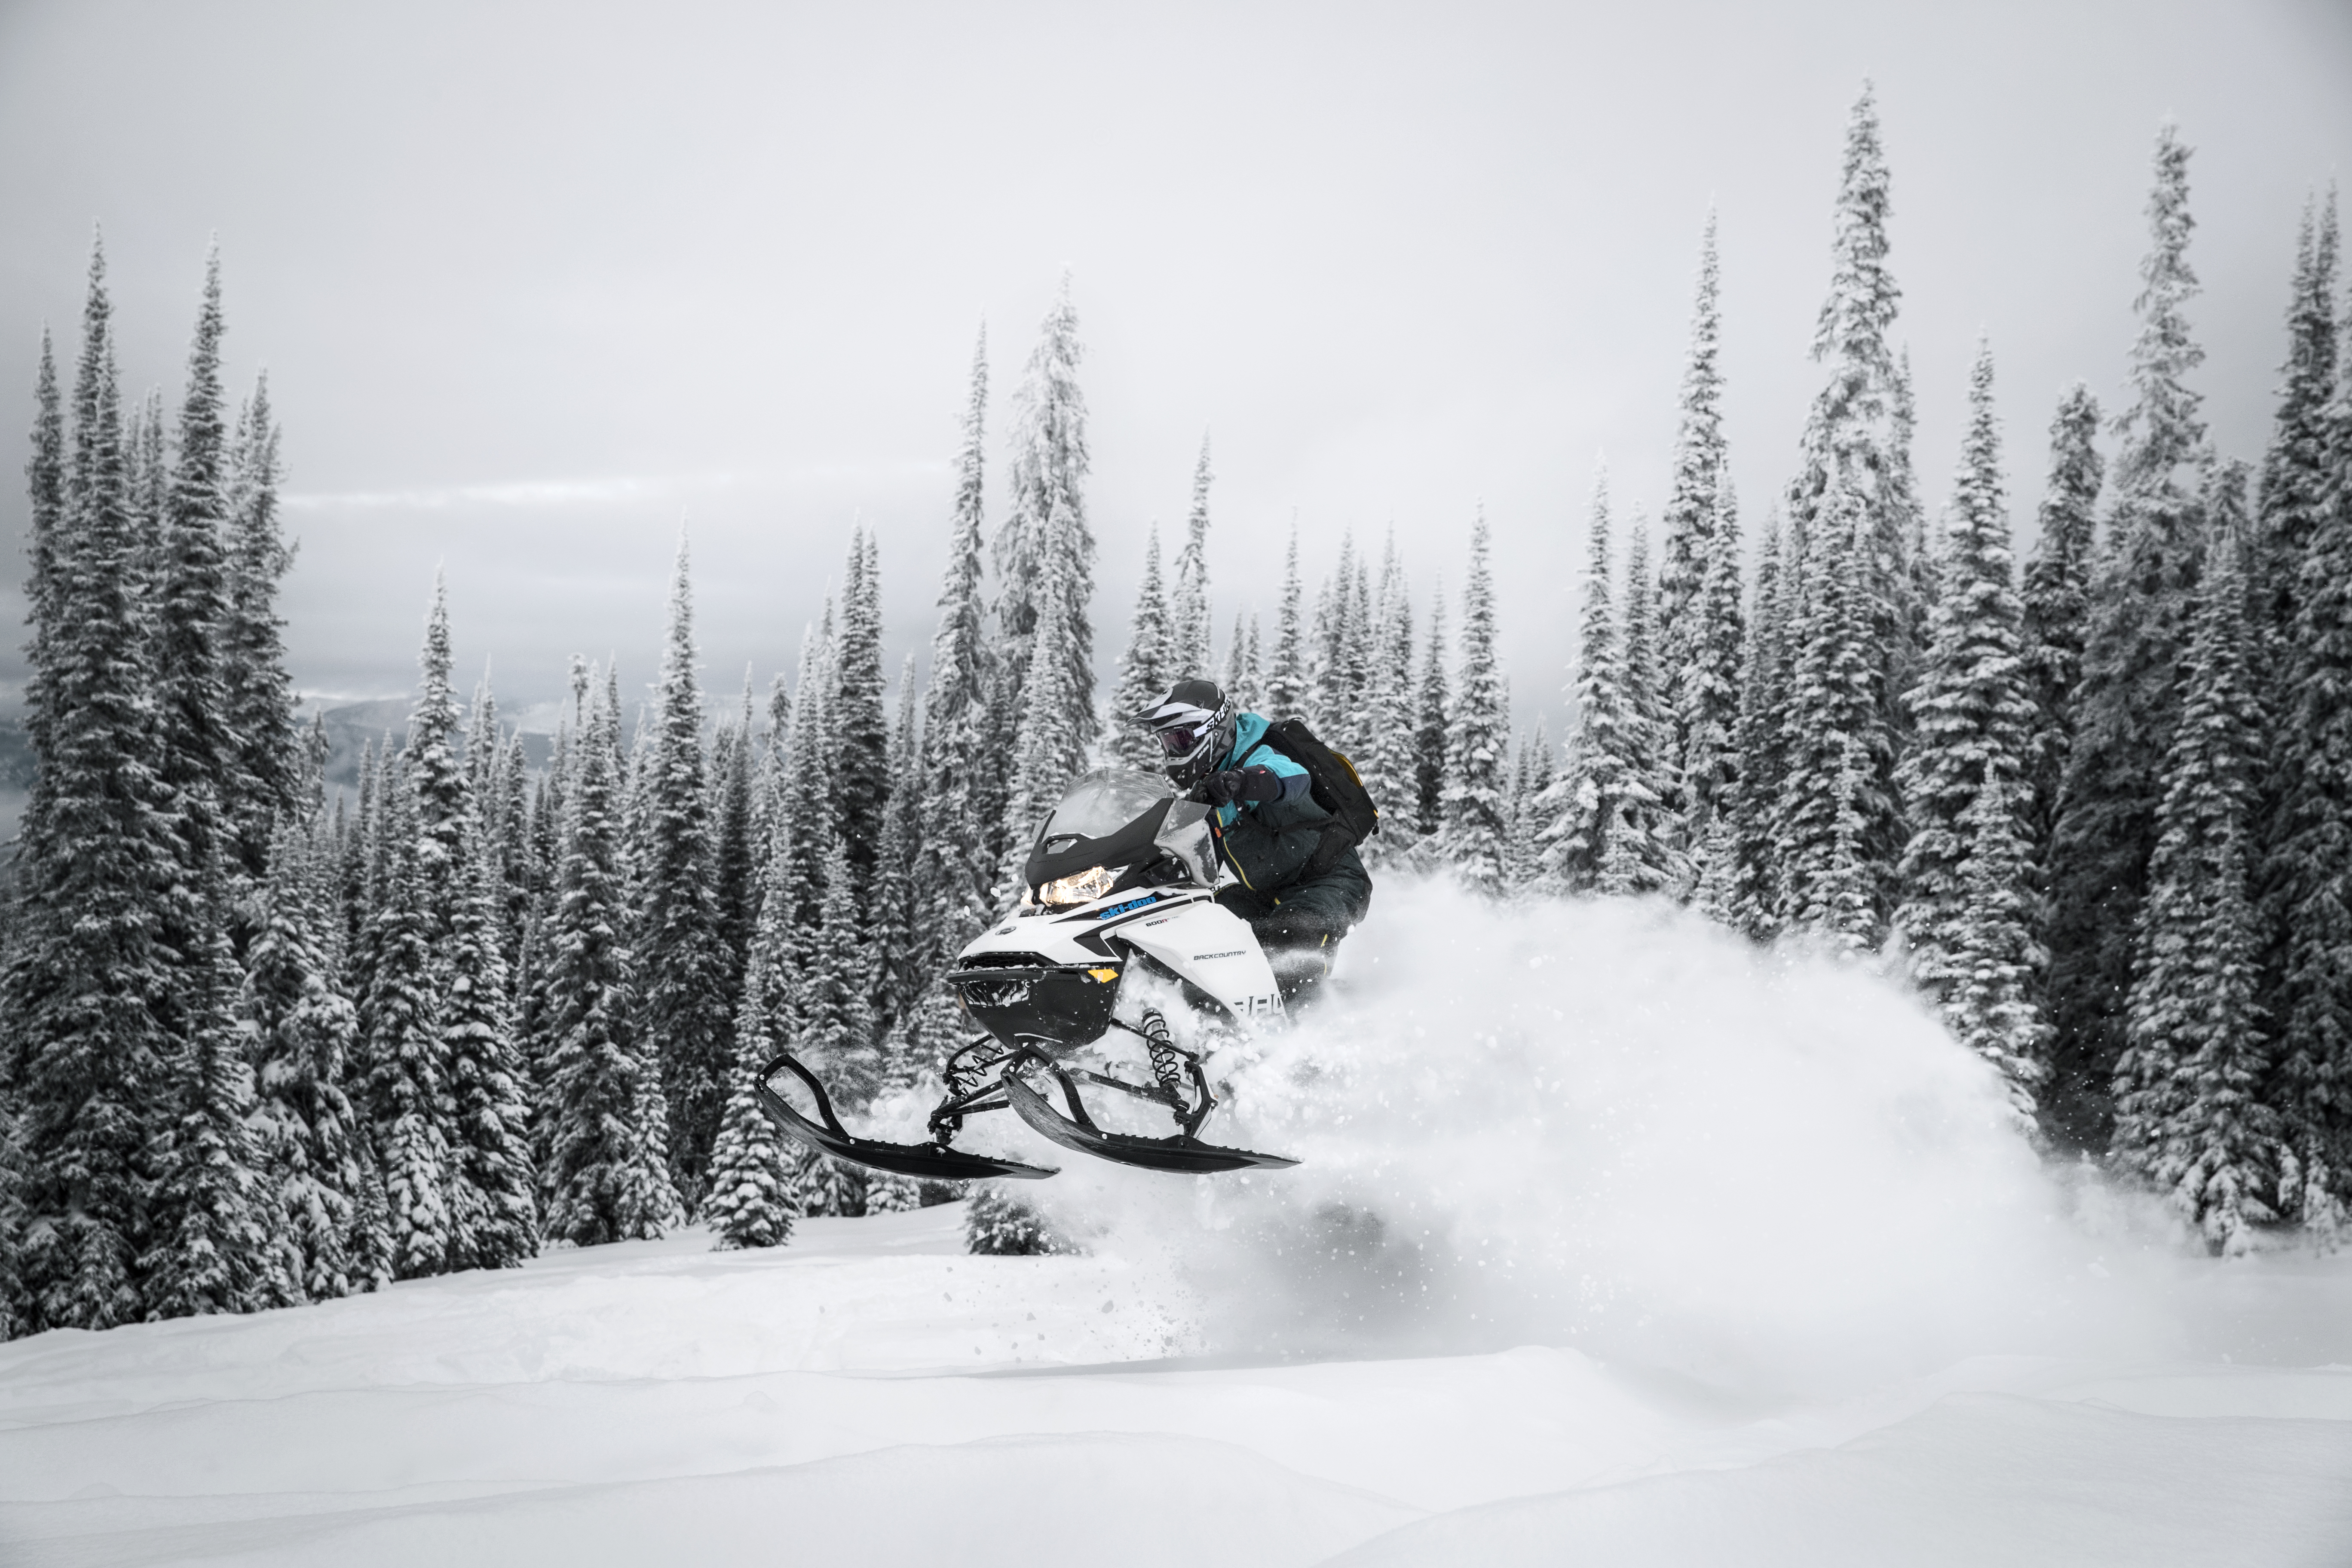 Getting some air on a Ski-Doo snowmobile